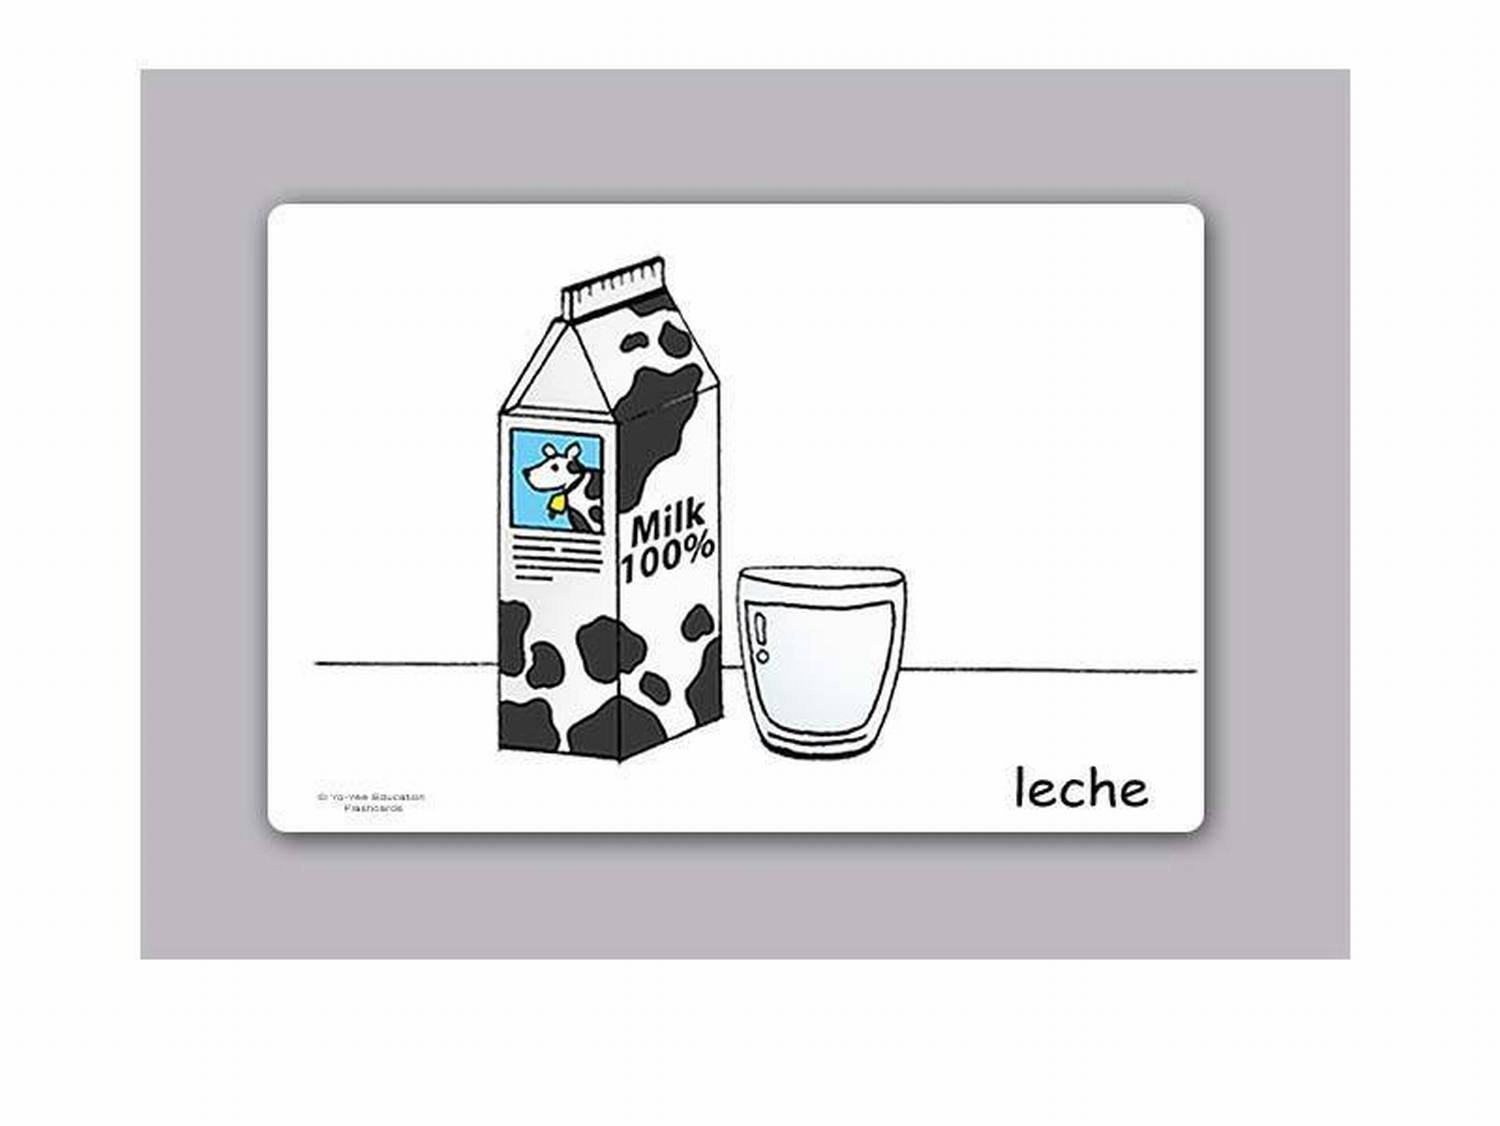 Amazon.com: Tarjetas de vocabulario - Food and Drinks Flashcards in Spanish: Toys & Games